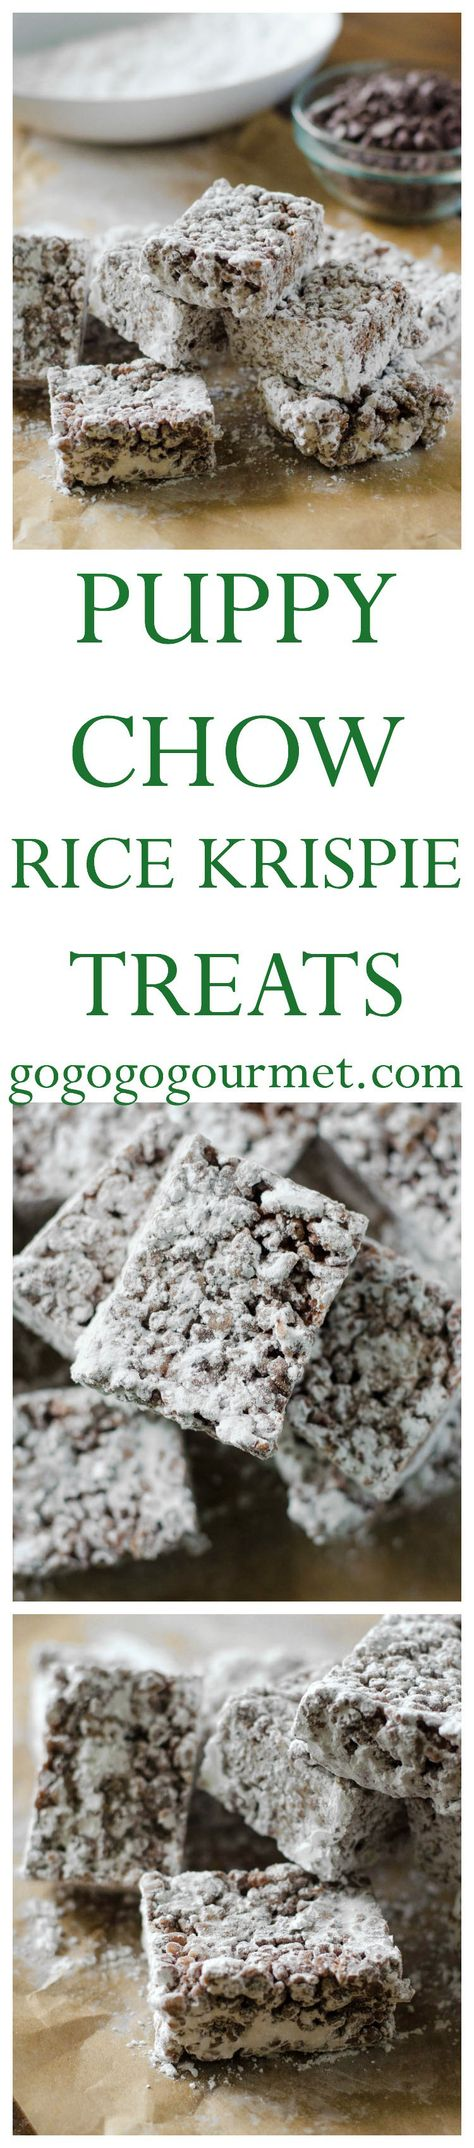 Whether you call it Muddy Buddies or Puppy Chow, this mashup of favorite childhood treats is a definite WIN! | Go Go Go Gourmet @gogogogourmet